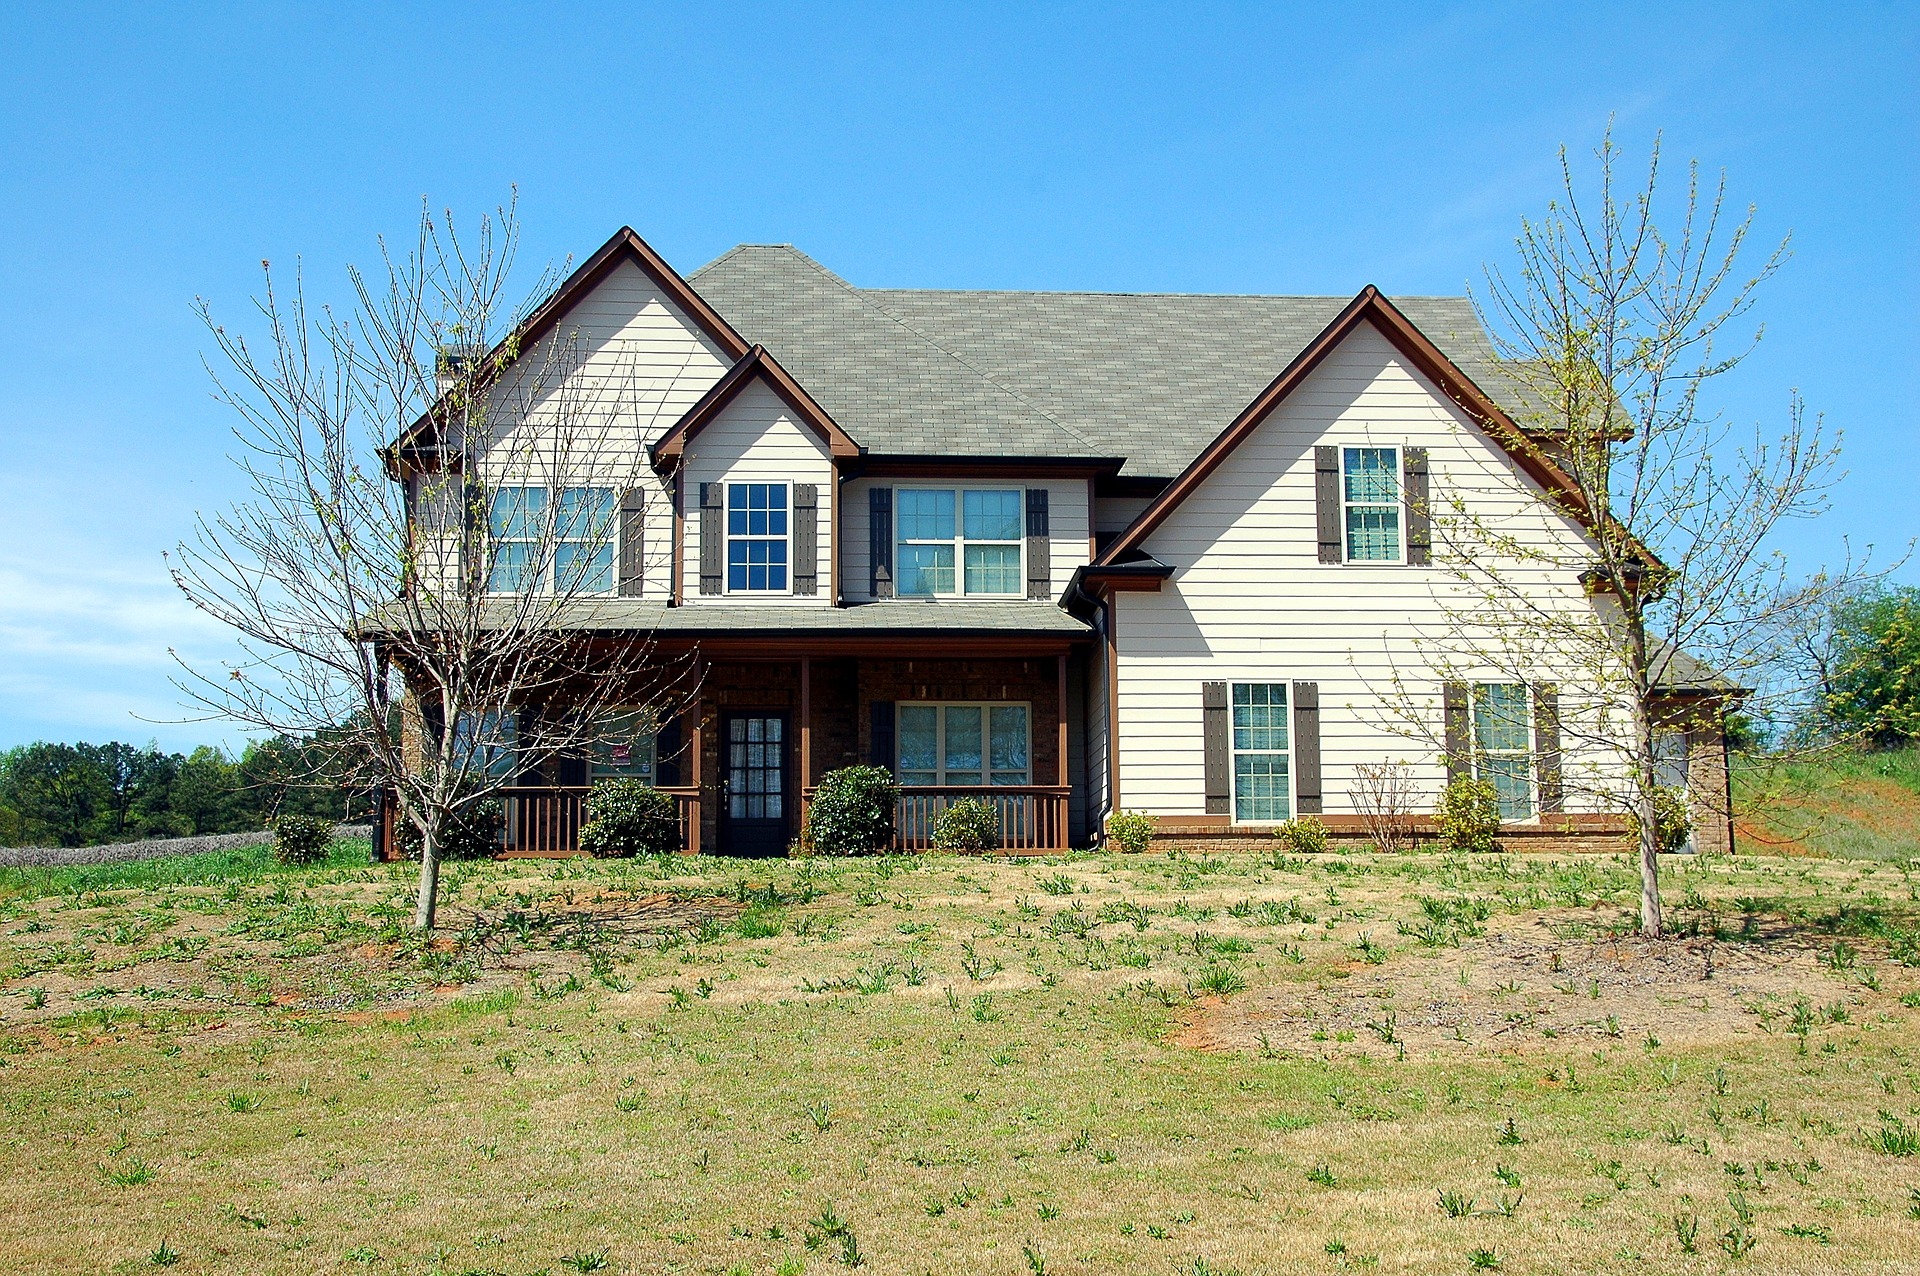 new-home-1673159_1920